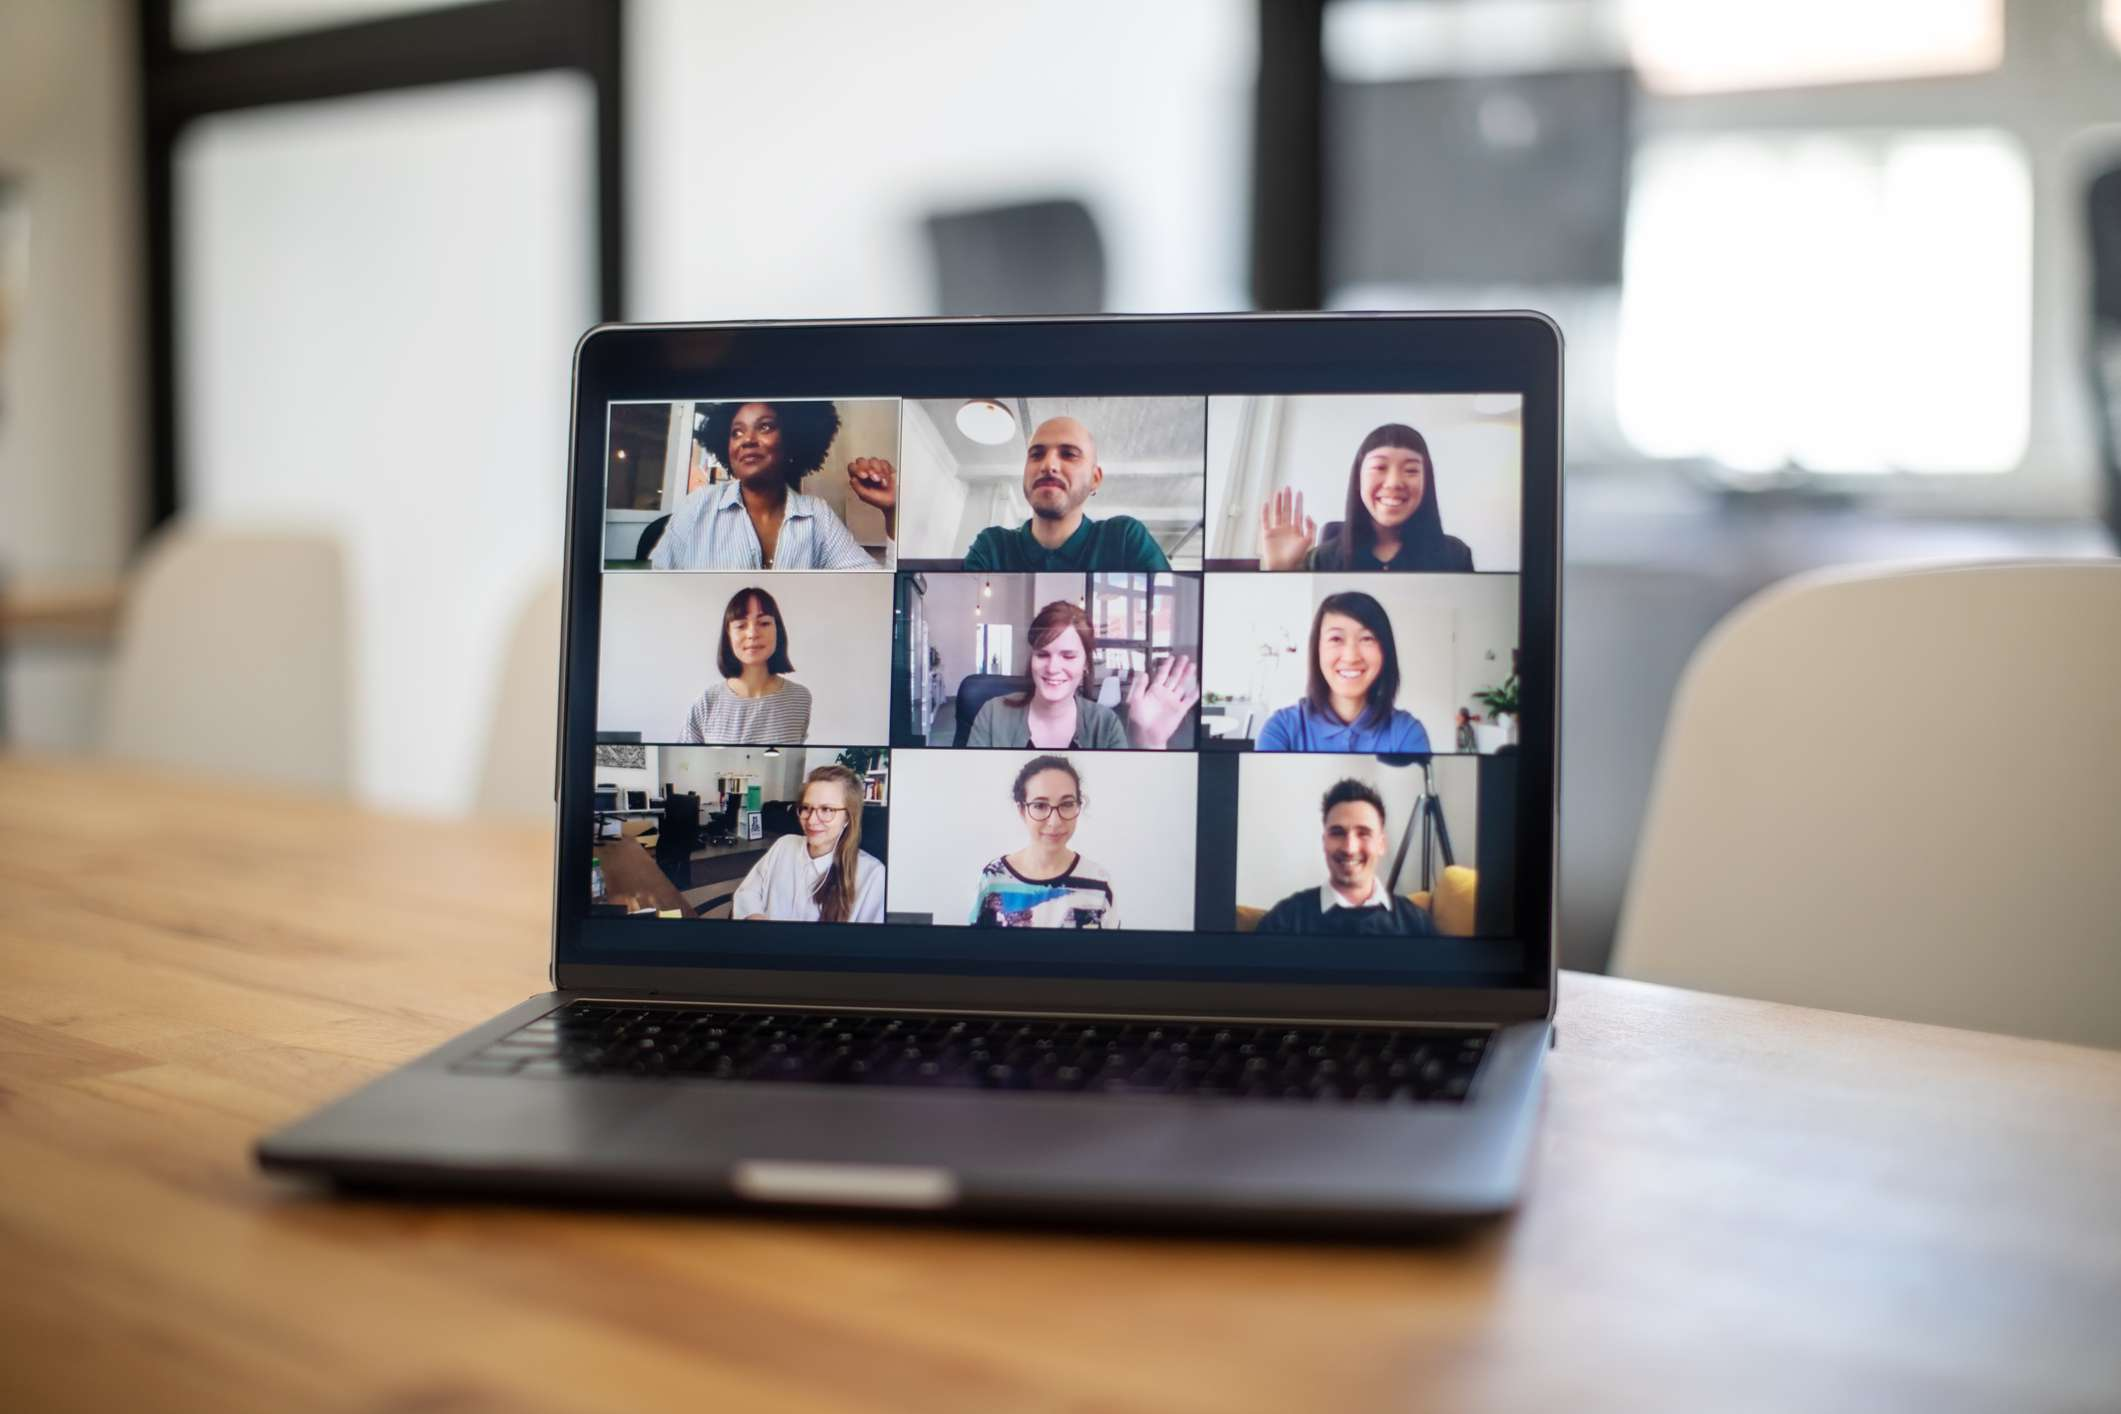 Group of business people seen on a laptop screen having an online meeting.